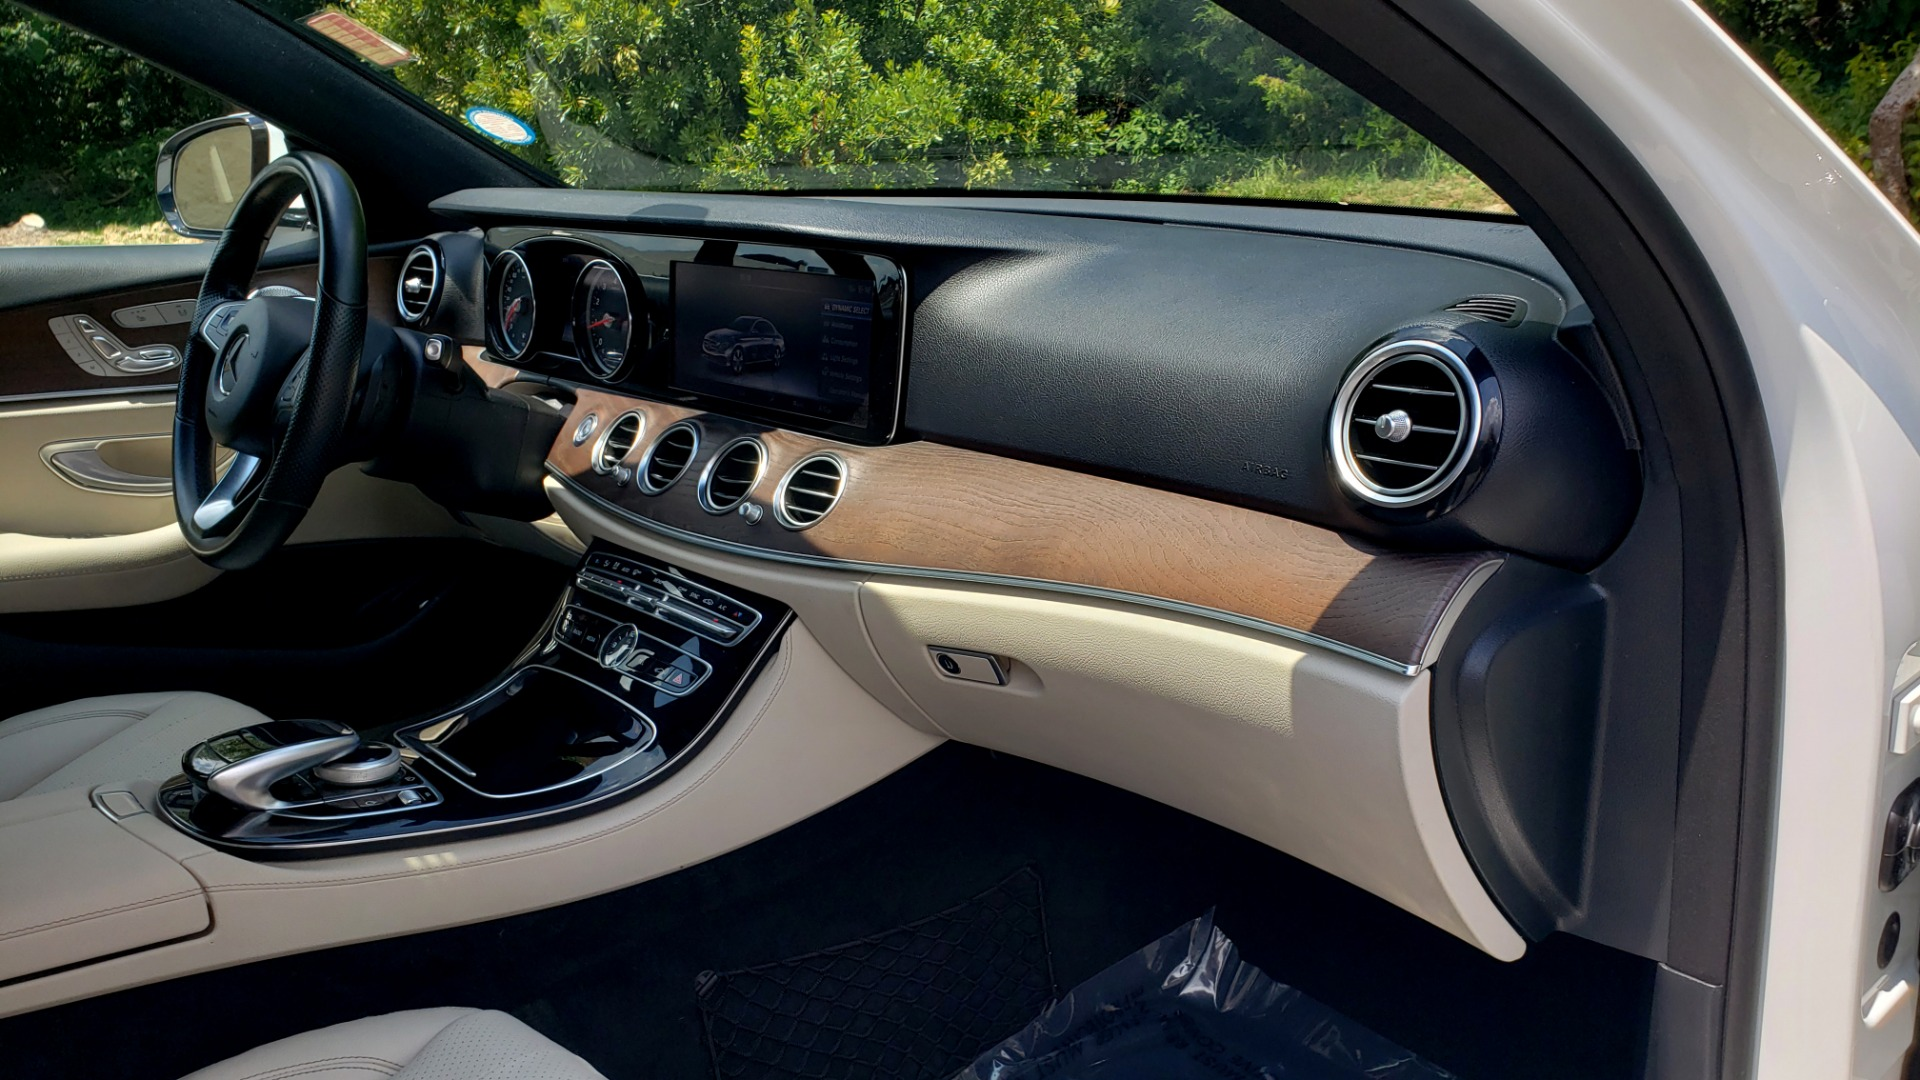 Used 2017 Mercedes-Benz E-CLASS E 300 PREMIUM / SPORT / NAV / SUNROOF / HTD STS / BSM / REARVIEW for sale $27,995 at Formula Imports in Charlotte NC 28227 66